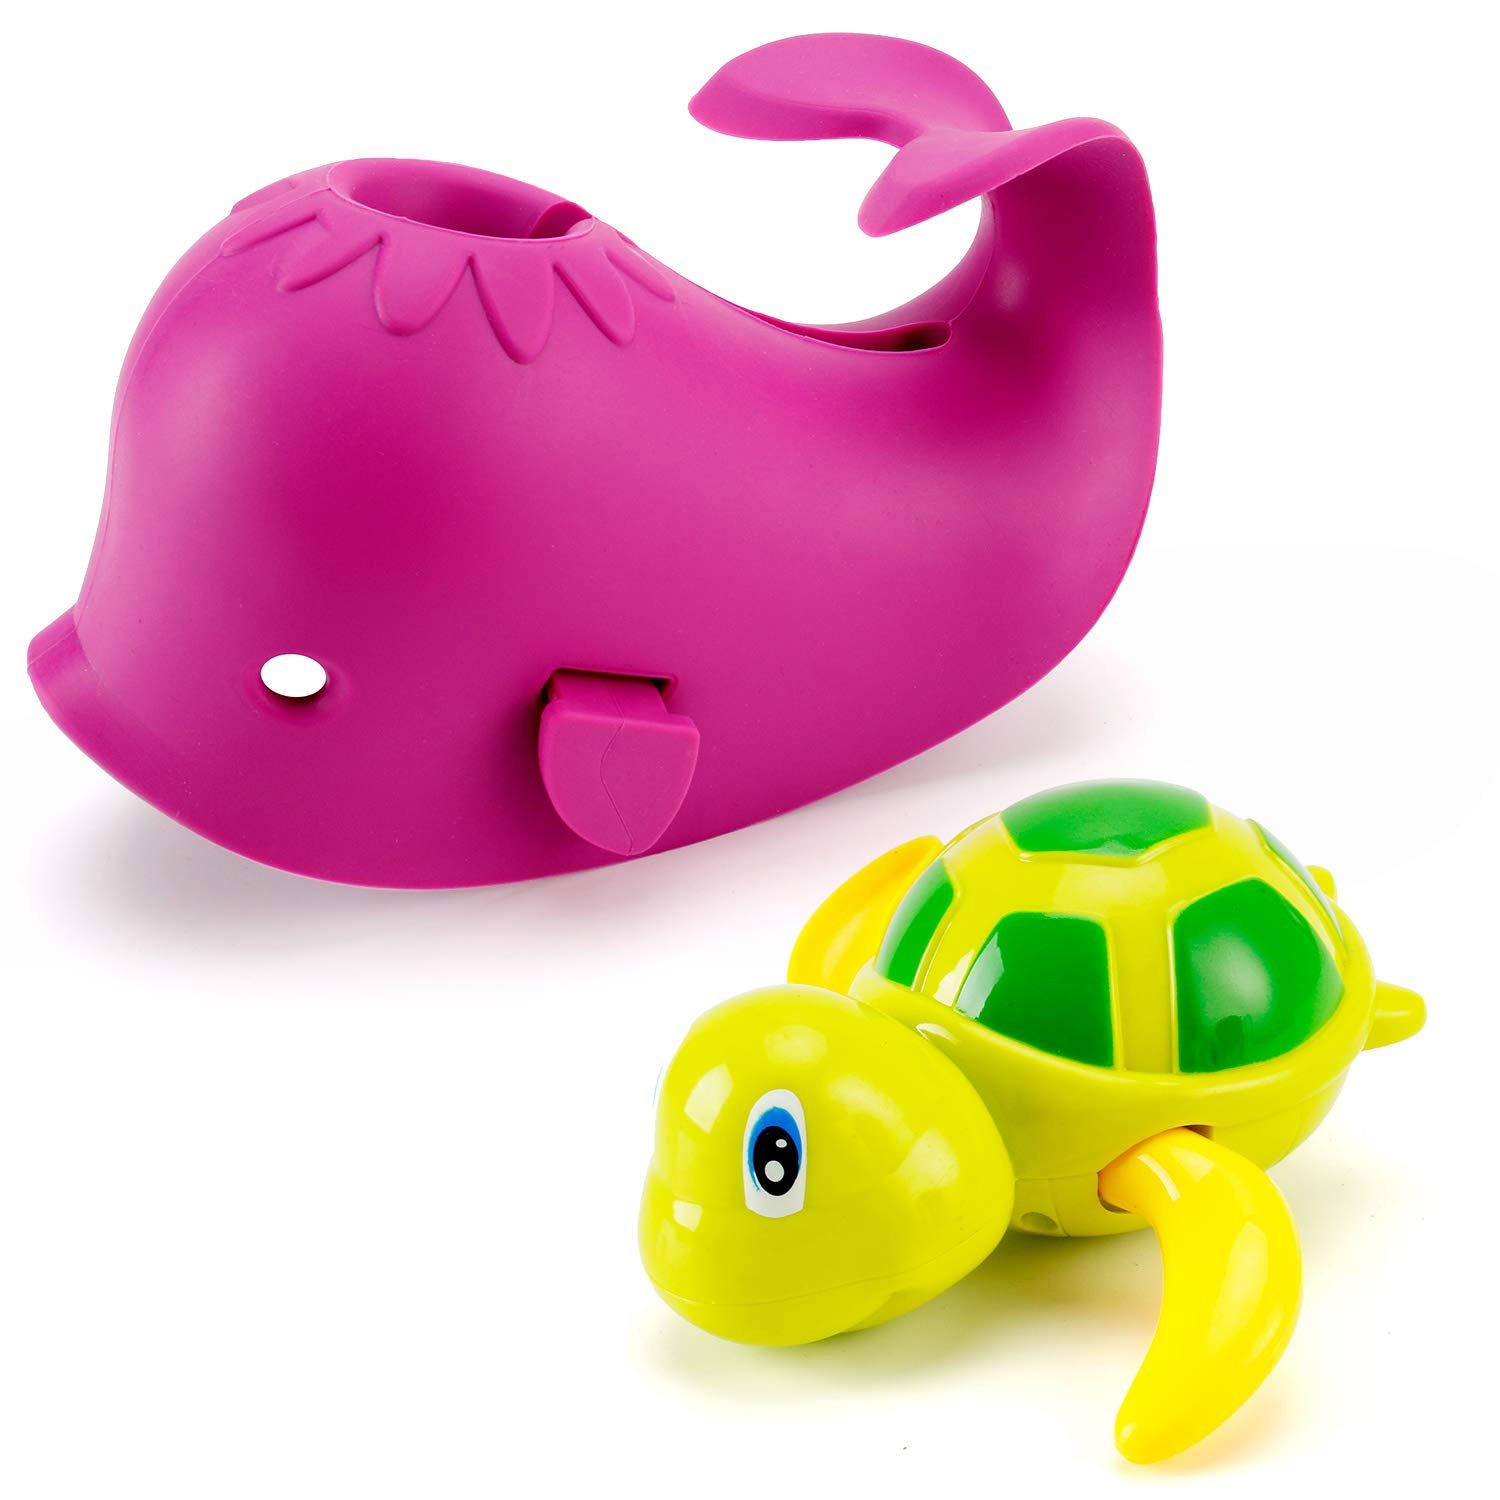 Artoflifer Baby Bath Spout Cover Baby Bathtub Faucet Cover Bath Tub Faucet Extender Protector Silicone Soft Spout Cover Purple Whale Bundles with Wind Up Turtle Faucet Baby Covers Protects Purple